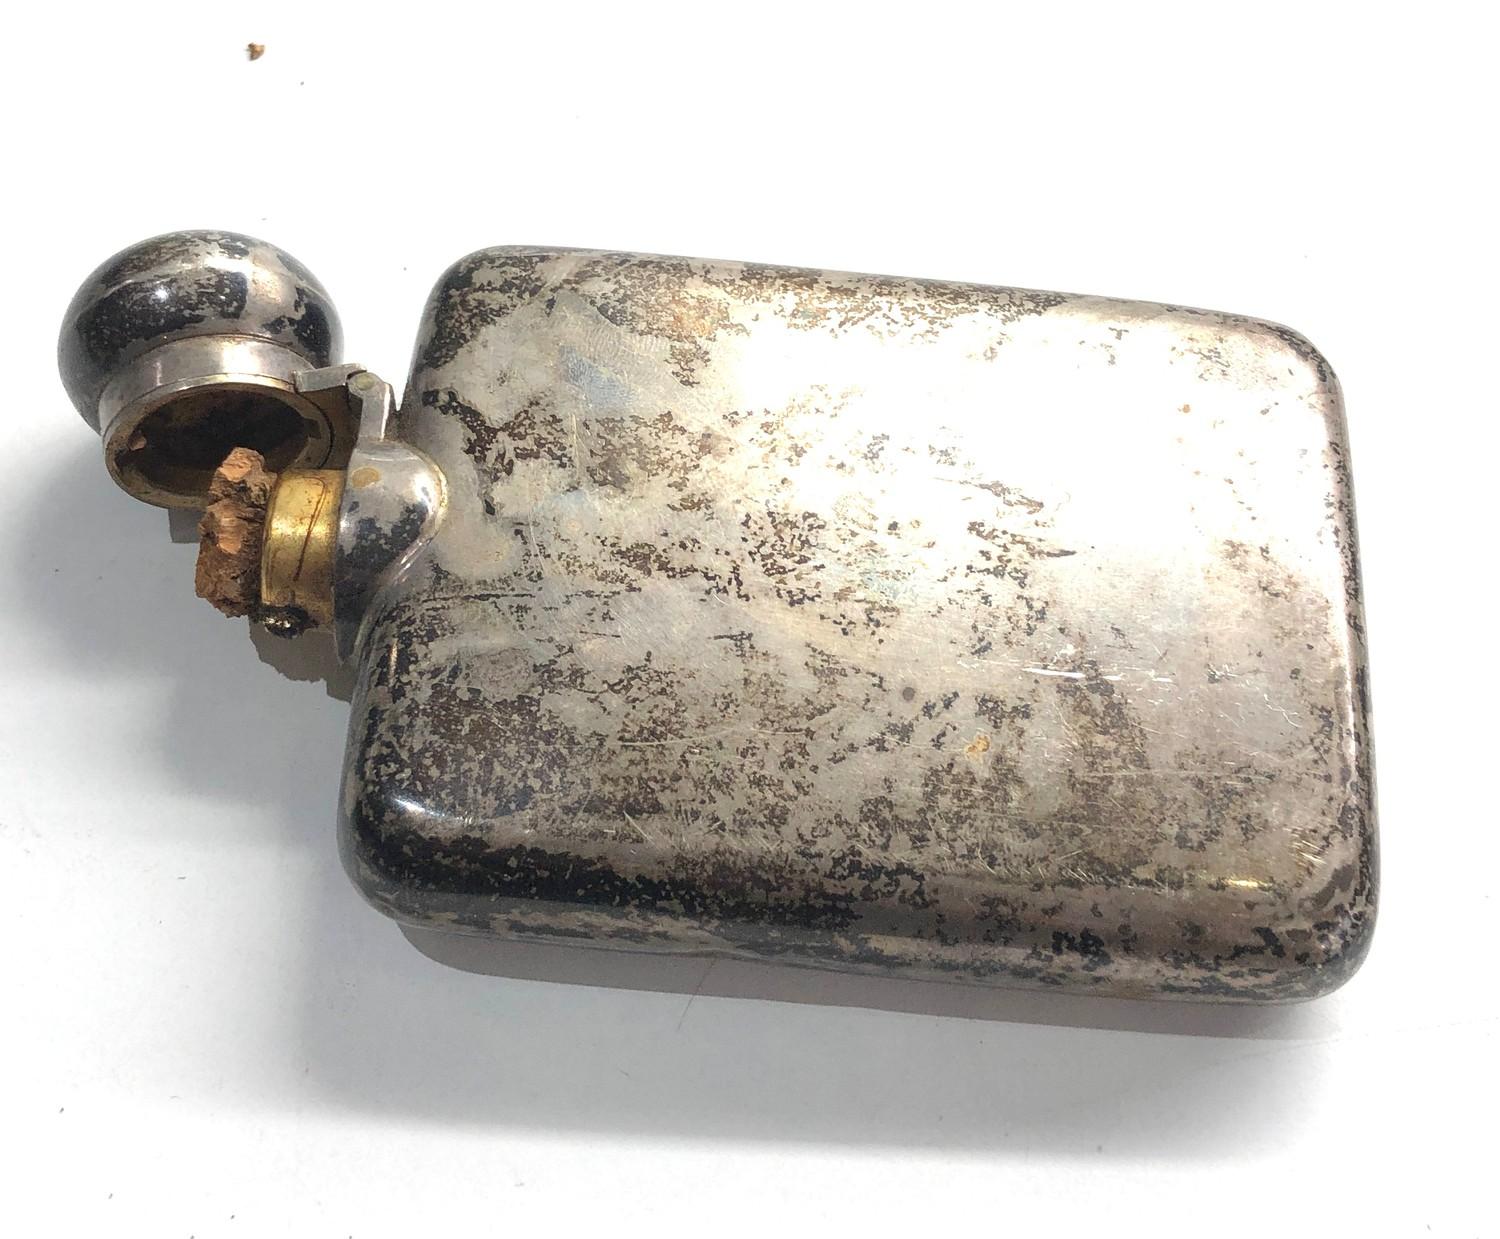 Silver hip flask Birmingham silver hallmarks weight 102g cork fitting lid does not close tight - Image 4 of 5